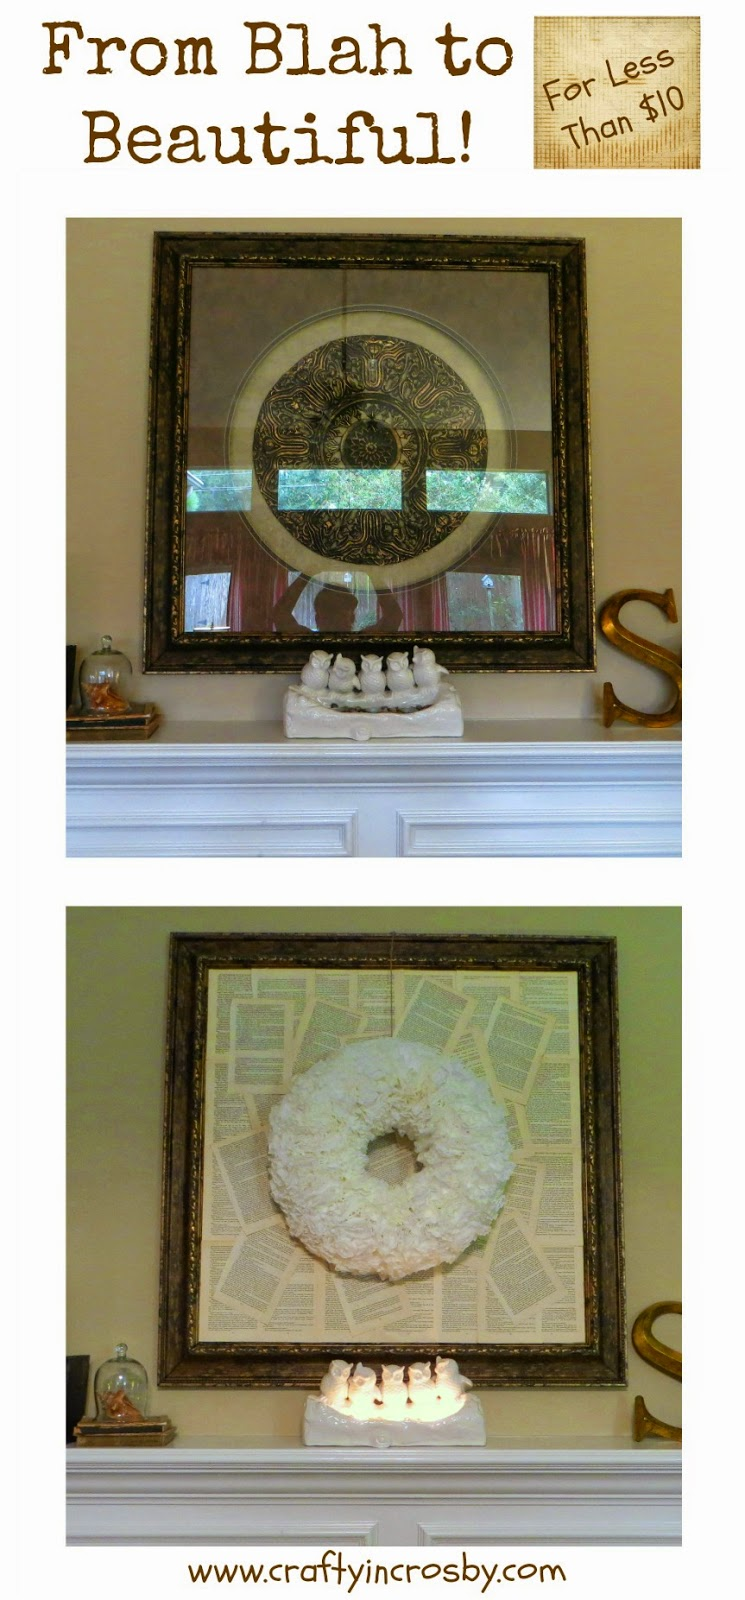 book page art, coffee filter wreath, upcycled book, vintage, refreshed, updated mantel, fireplace mantel